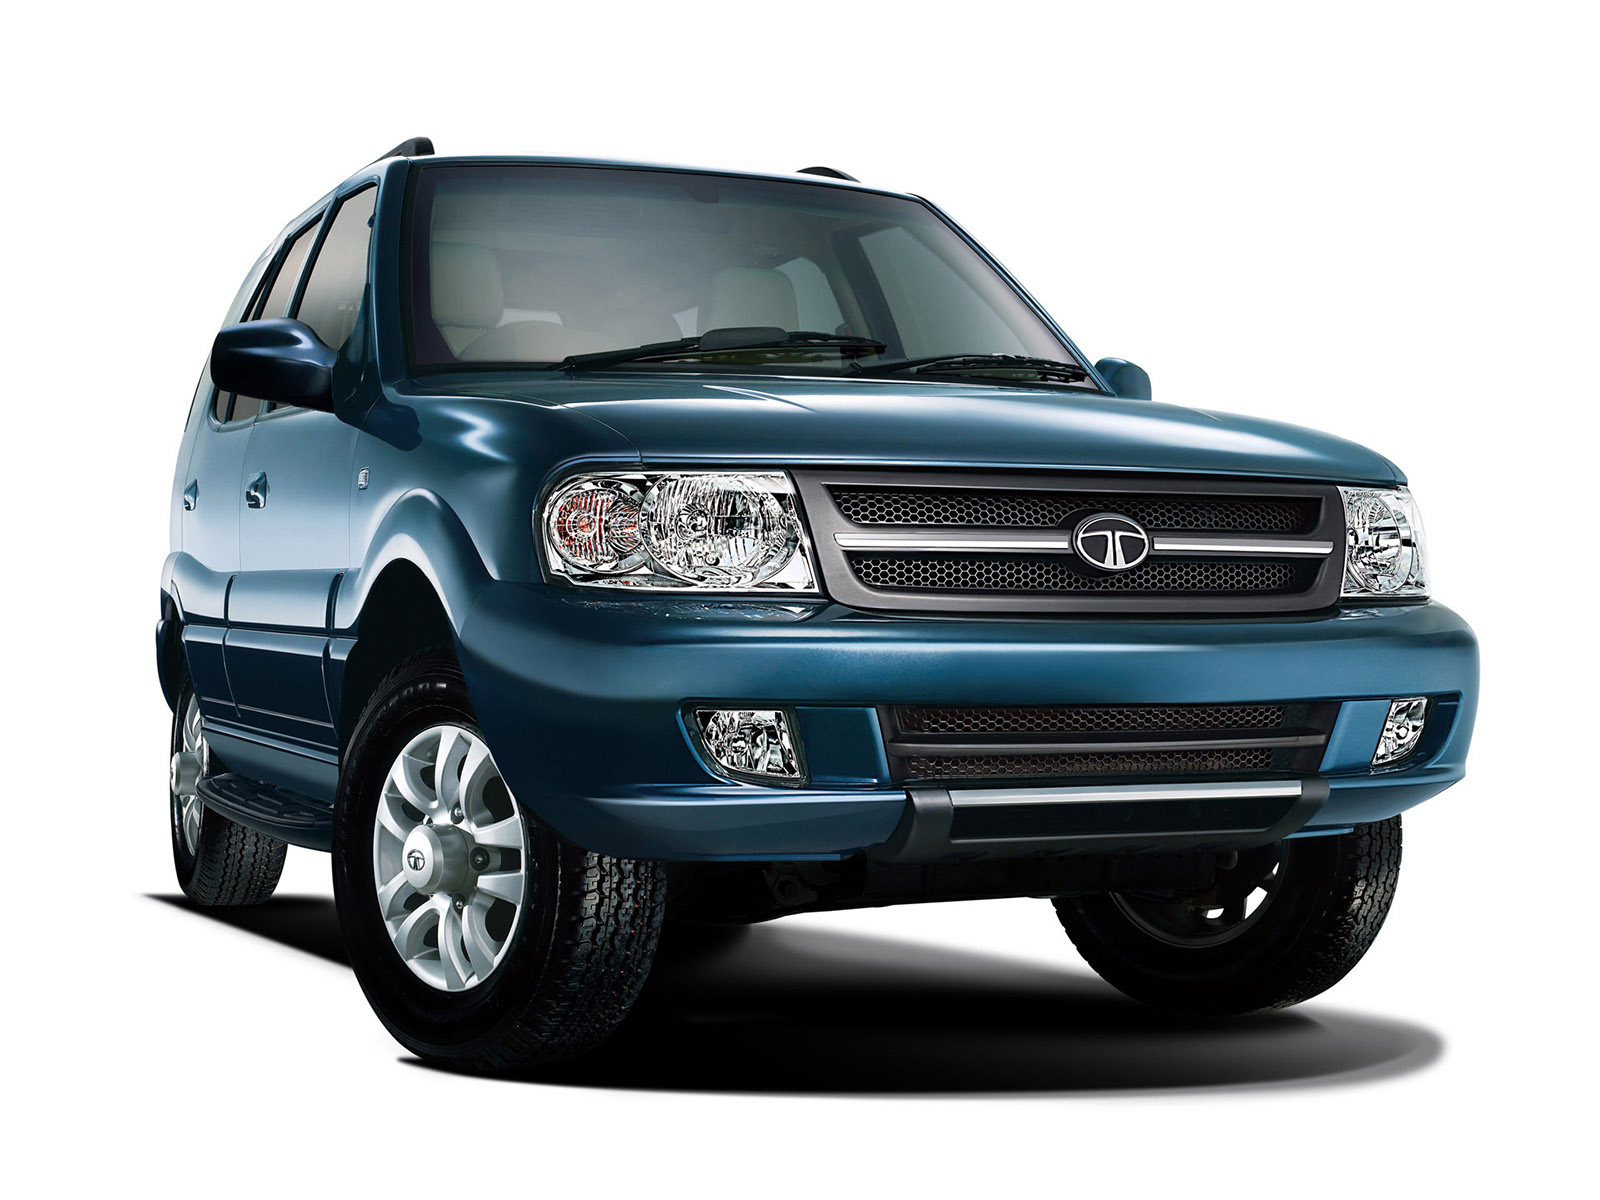 Tata Safari images pictures wallpapers photos | Tata Car Models